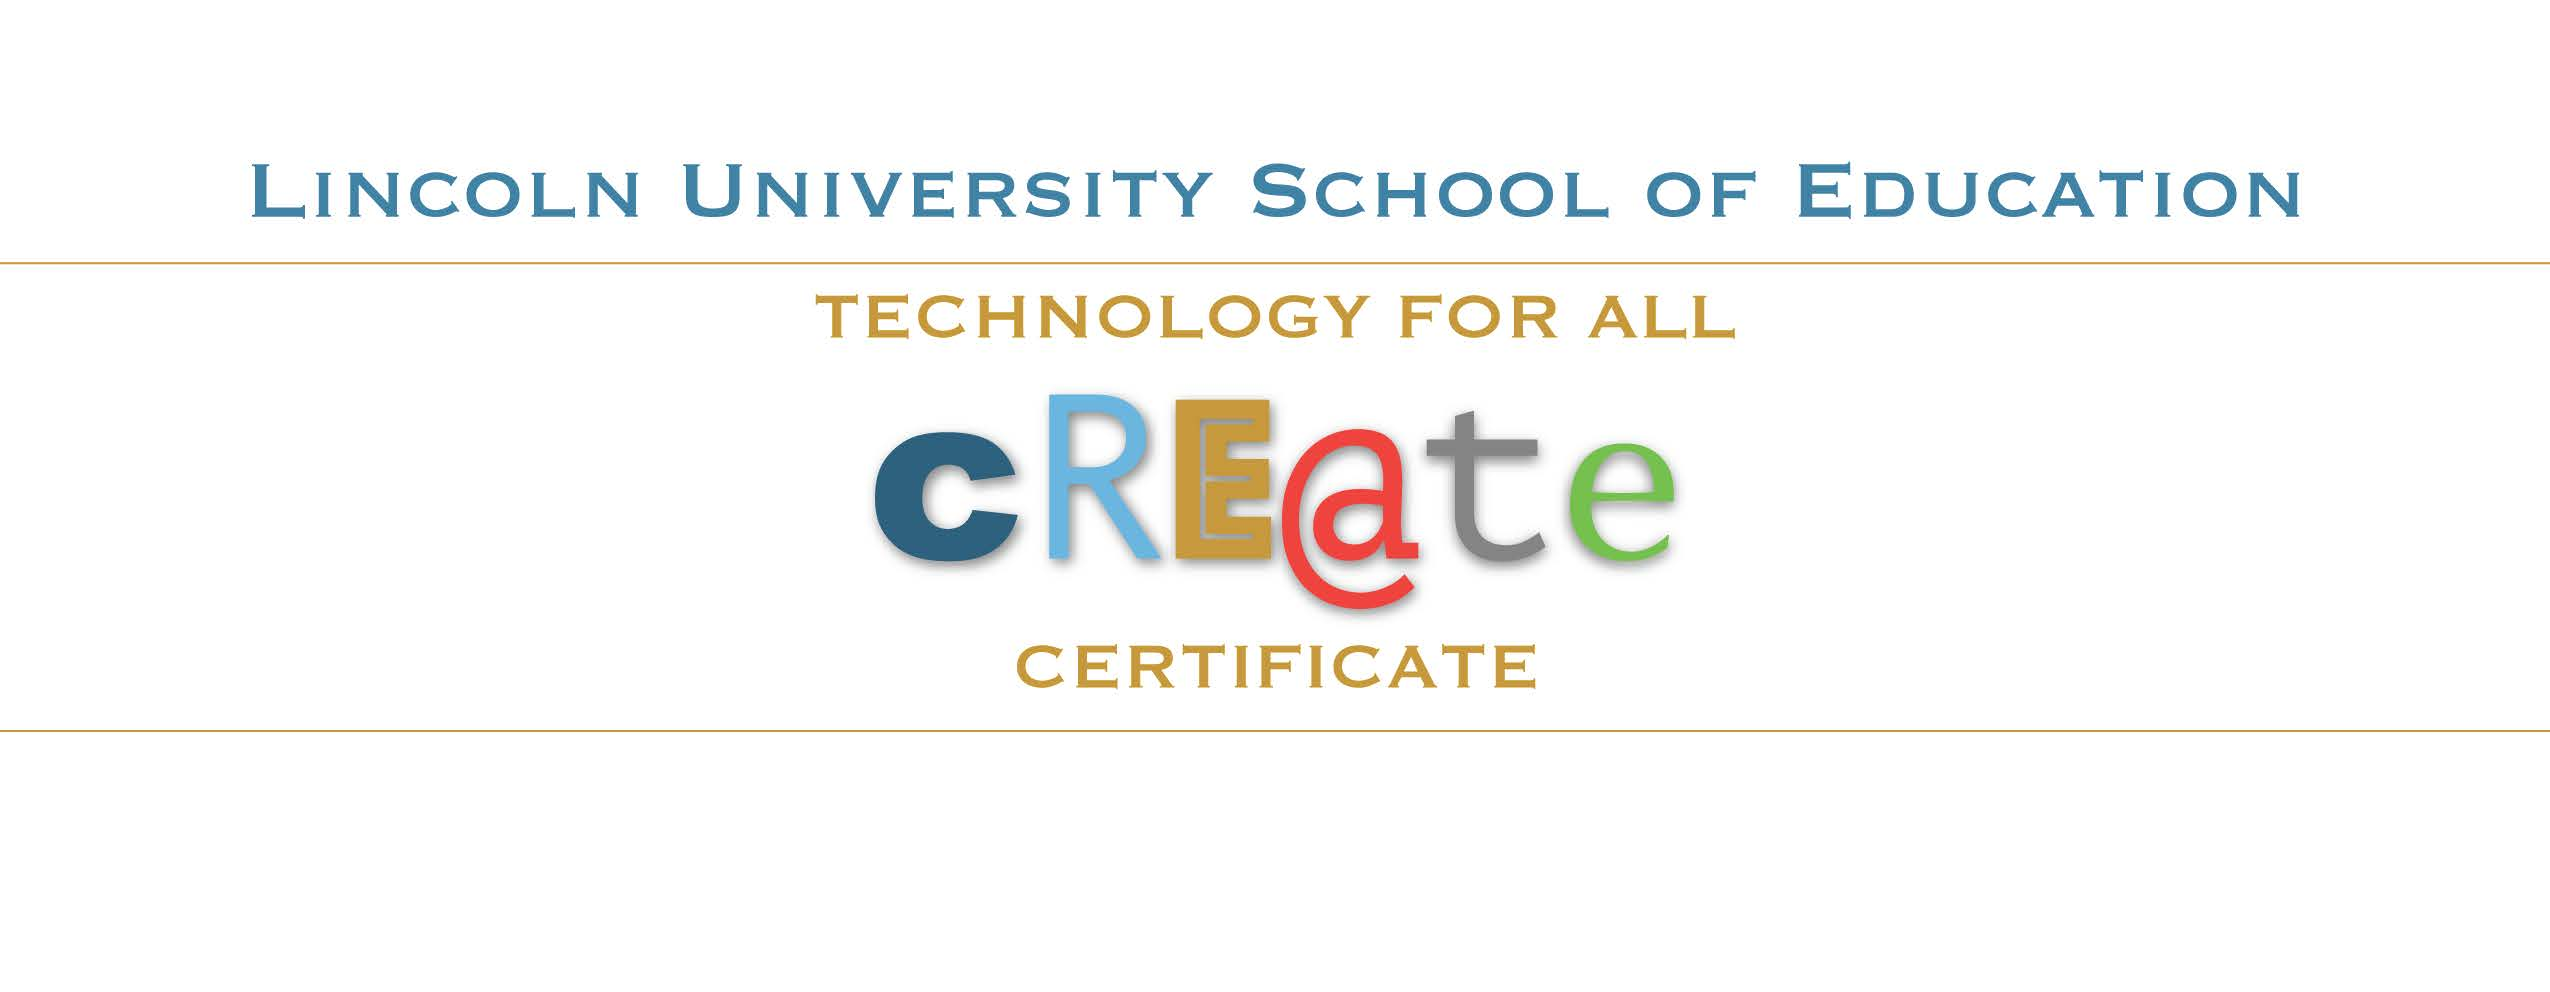 Lincoln University School of Education's advertisement/banner for the CREATE certificate and Technology for All